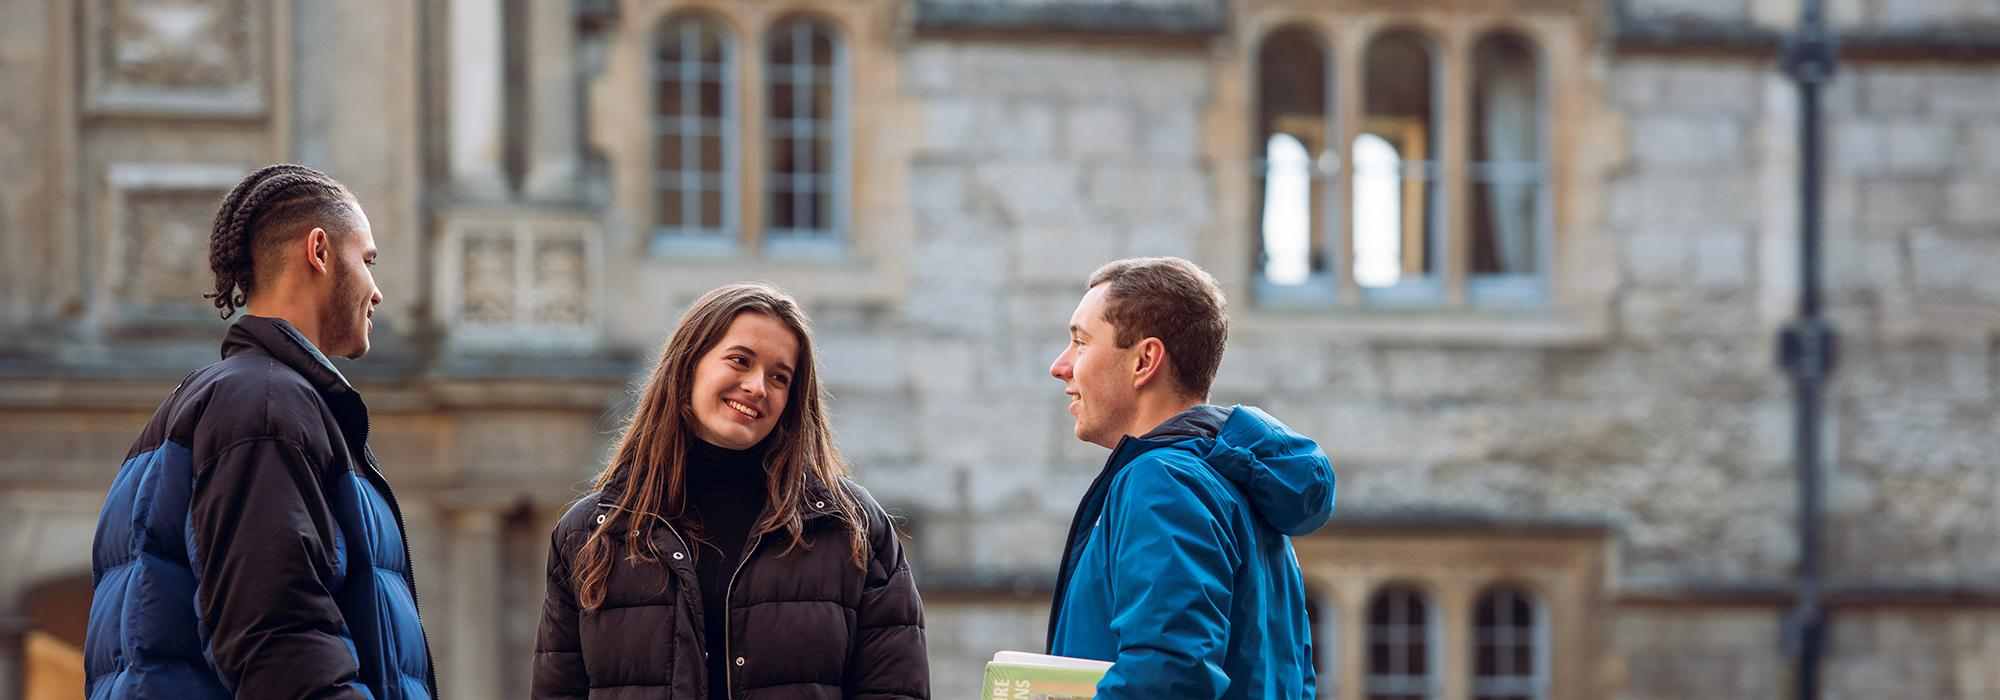 Students in Front Quad, 2019 - Photo: © John Cairns - www.johncairns.co.uk